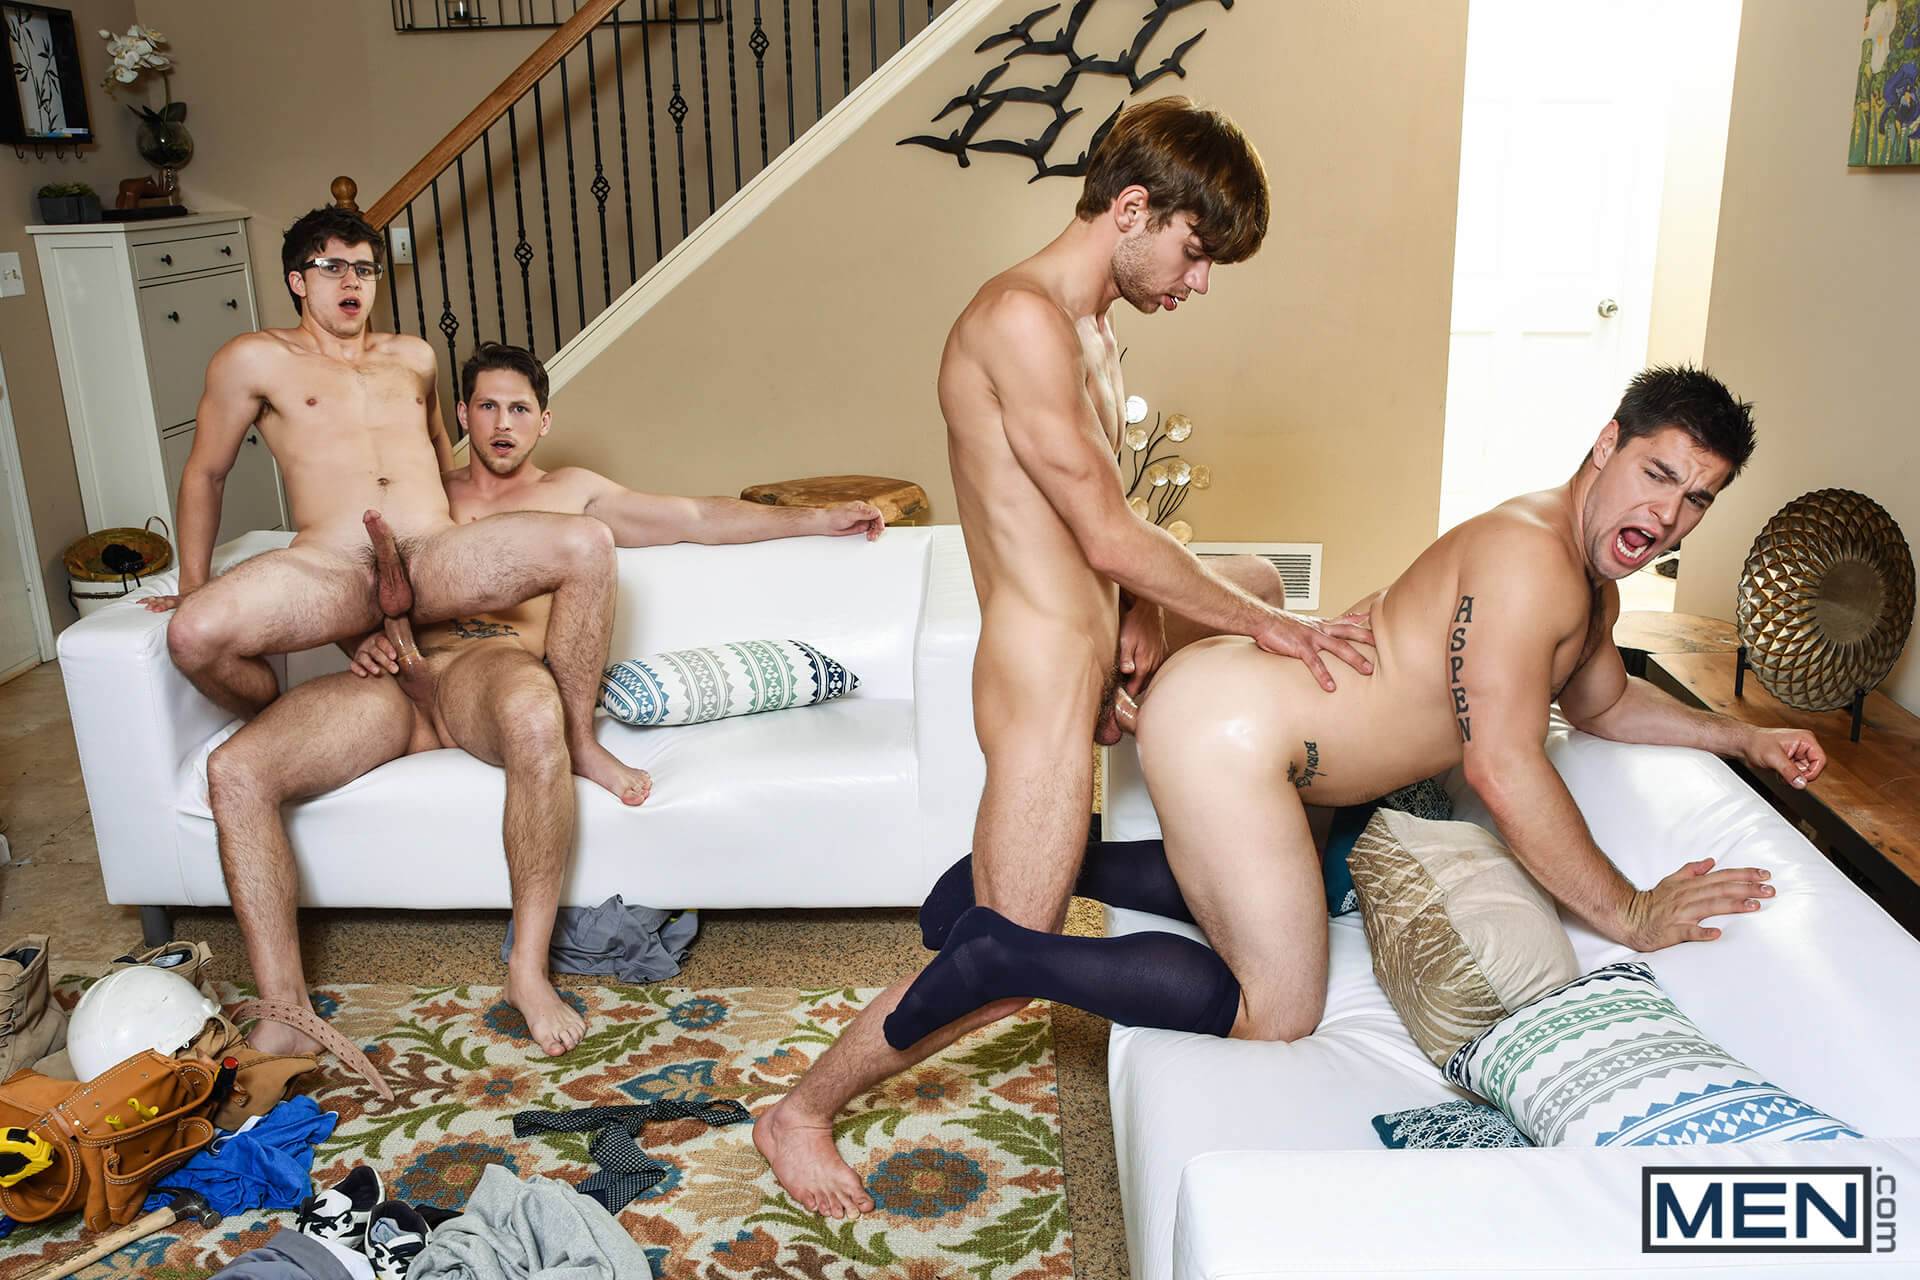 men jizz orgy the purge aspen dalton briggs roman todd will braun gay porn blog image 23